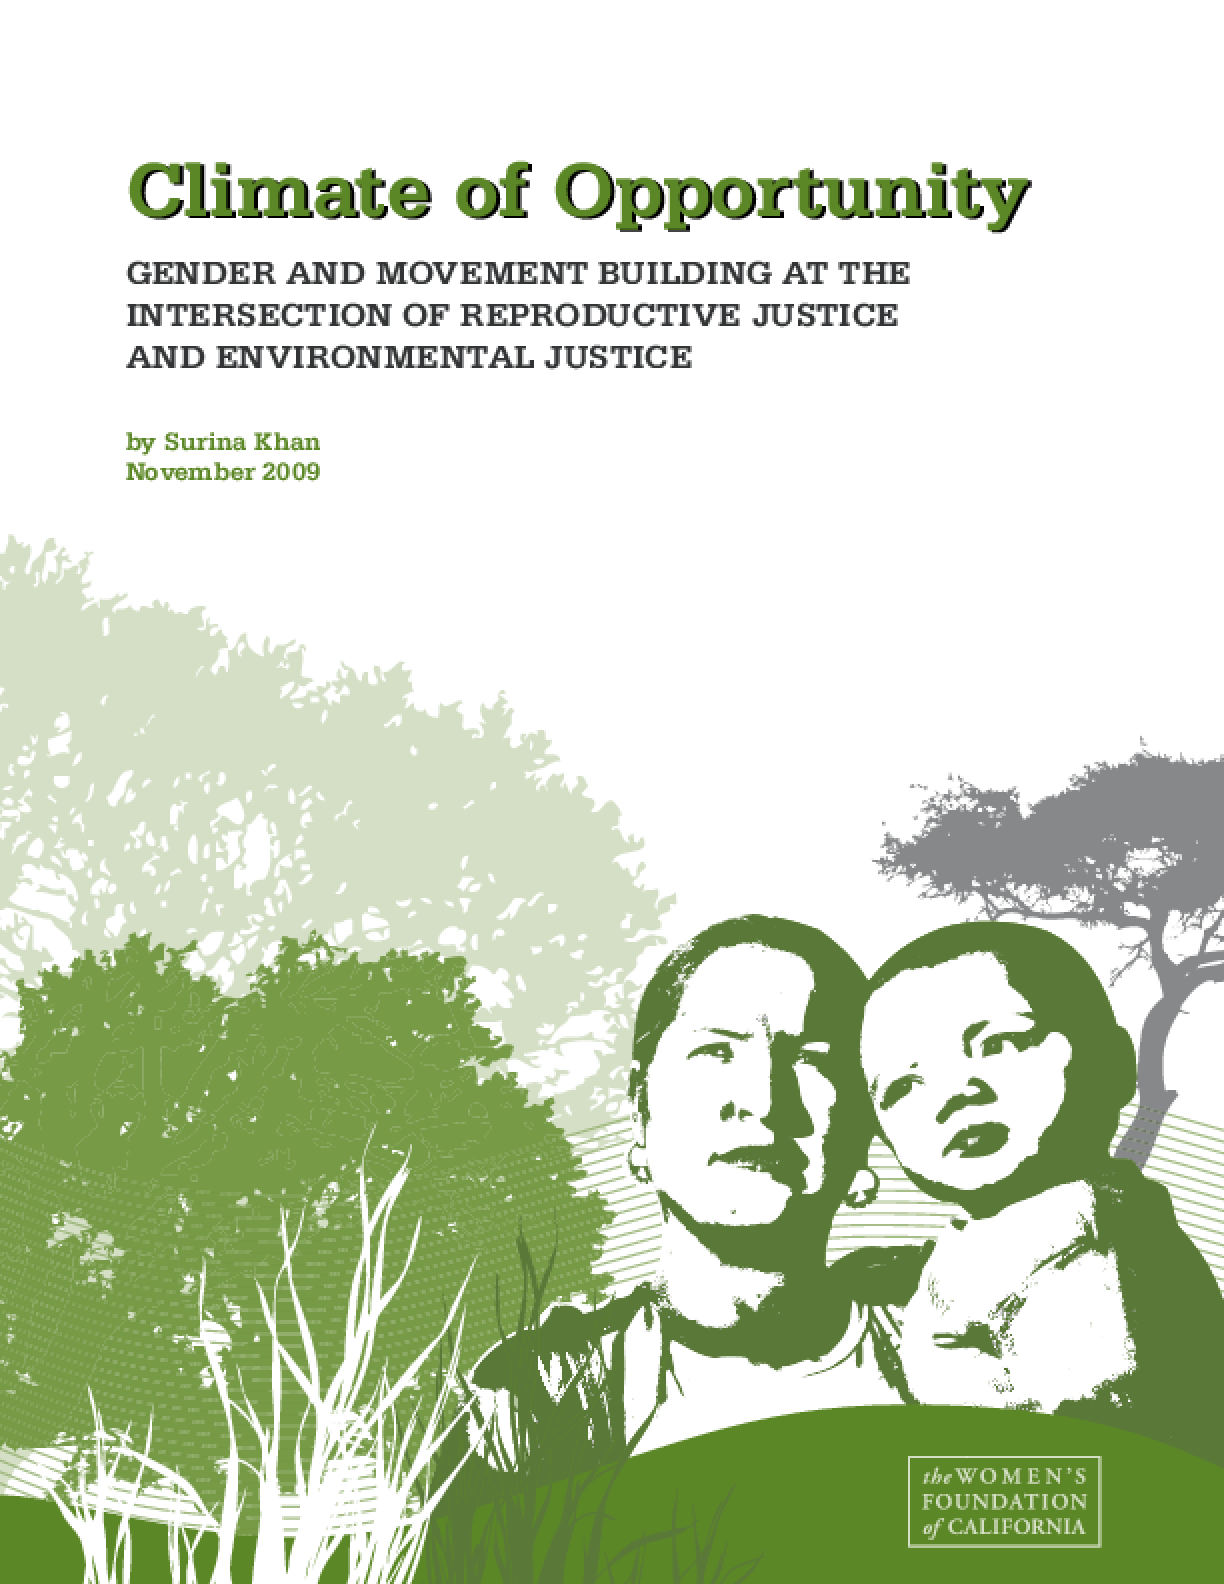 Climate of Opportunity: Gender and Movement Building at the Intersection of Reproductive Justice and Environmental Justice